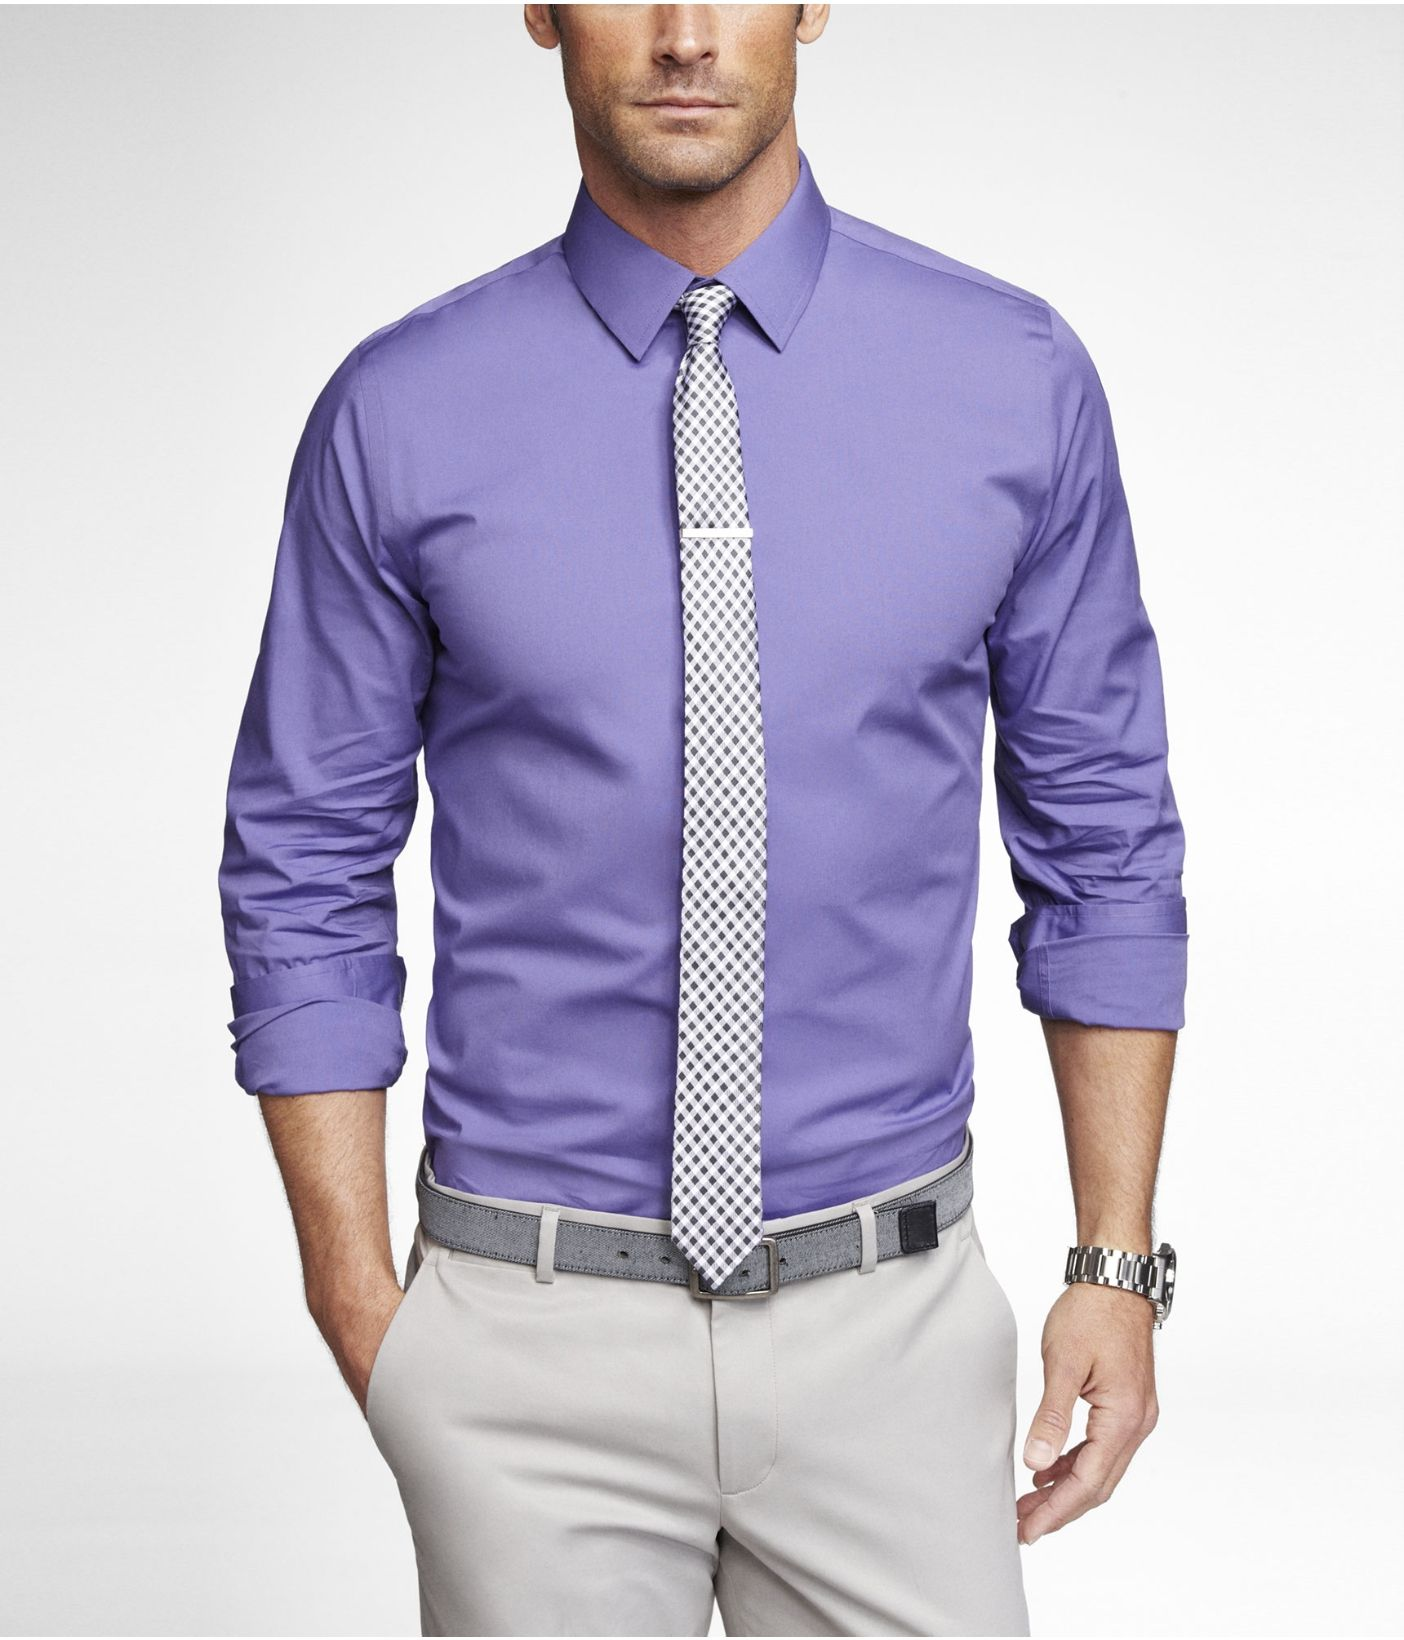 Purple Dress Shirt Black And White Tie Light Grey Pant Gray Belt | Fashion Menswear ...